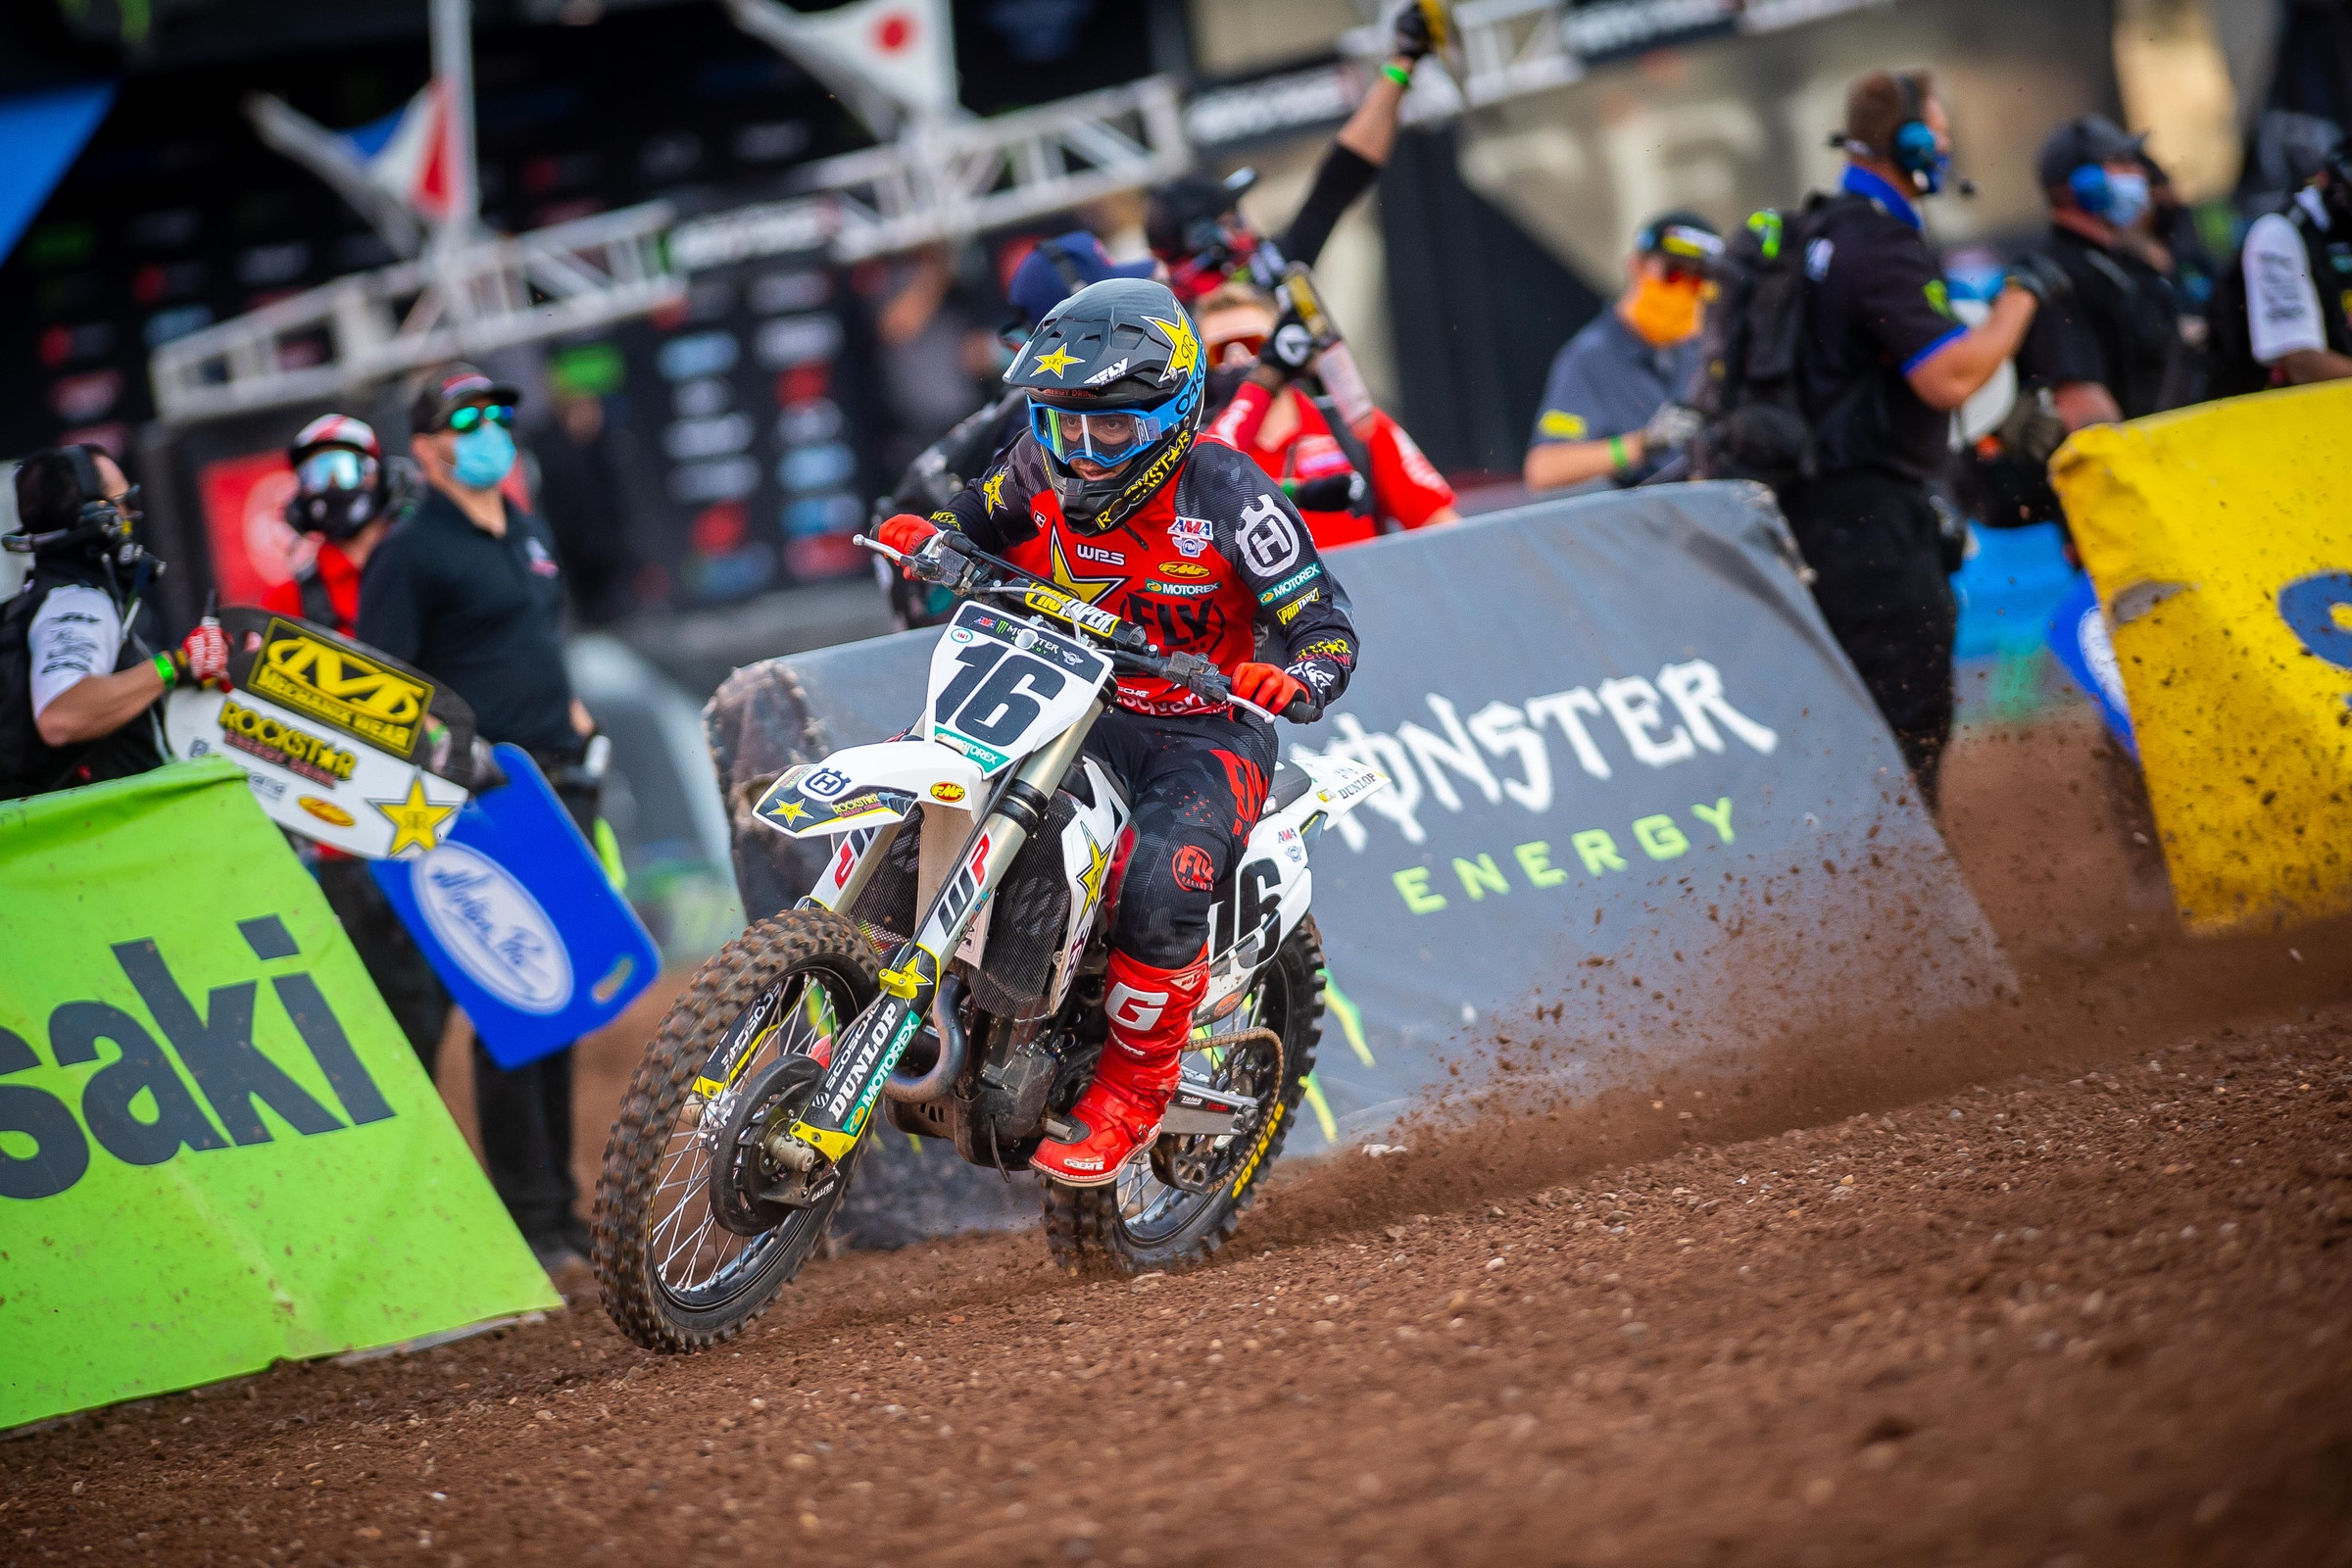 Calendrier Ama Supercross 2021 2021 AMA Supercross and Motocross Top 100 and Career Numbers